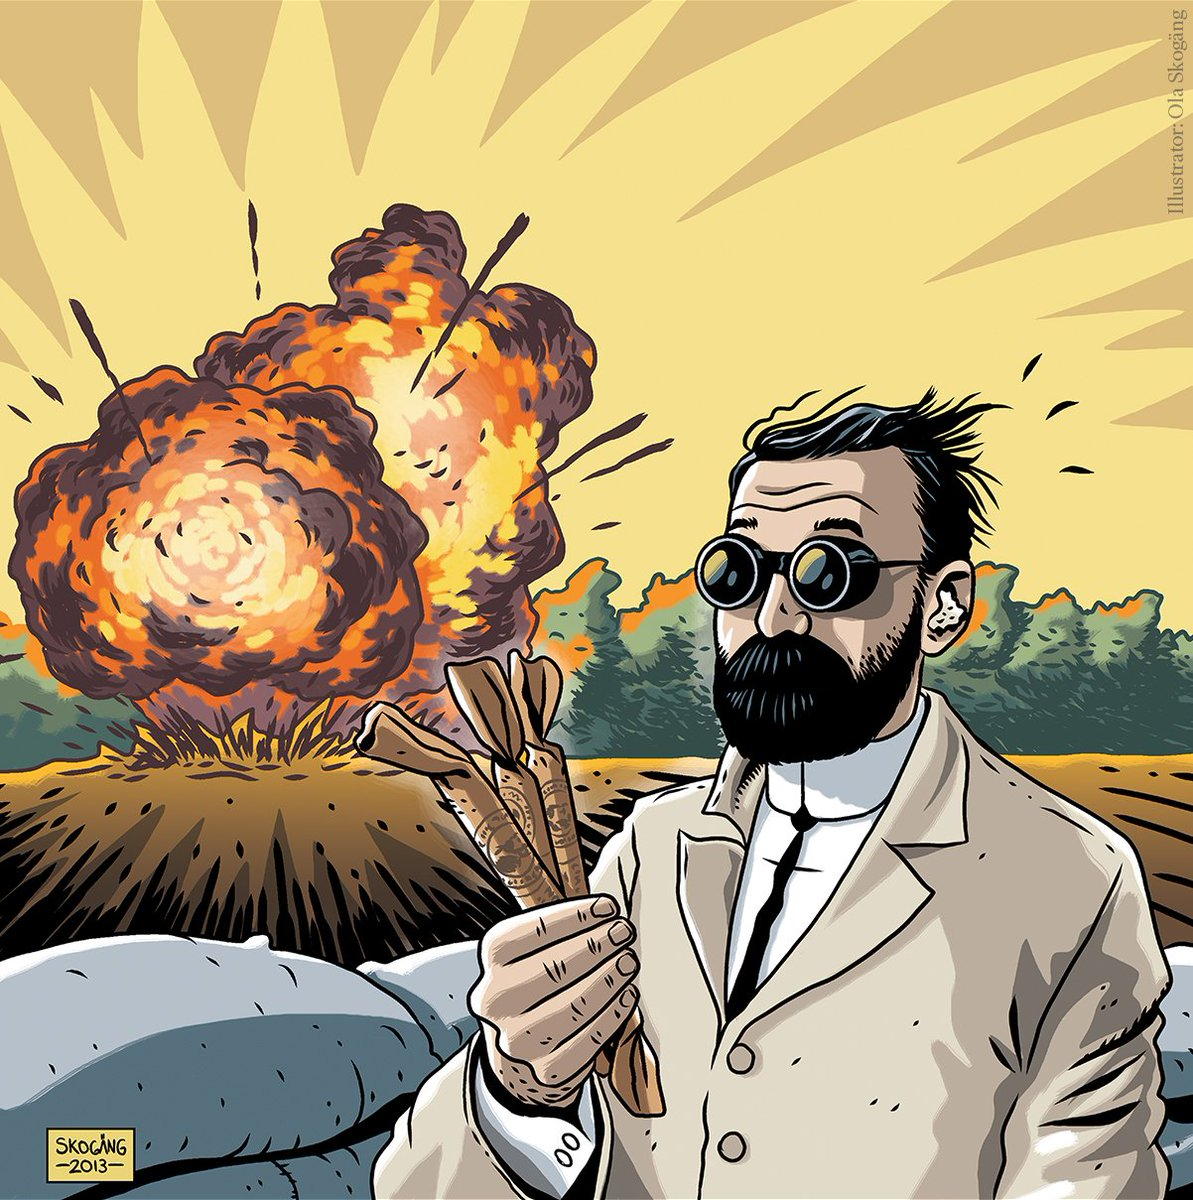 #OTD 152 years ago, Alfred Nobel obtained a U.S. patent on dynamite. The Swedish inventor and entrepreneur Alfred Nobel had acquired 355 patents worldwide when he died in 1896.  In his last will, he left much of his wealth to the establishment of the Nobel Prize. https://t.co/2mt4Xh5Z5a